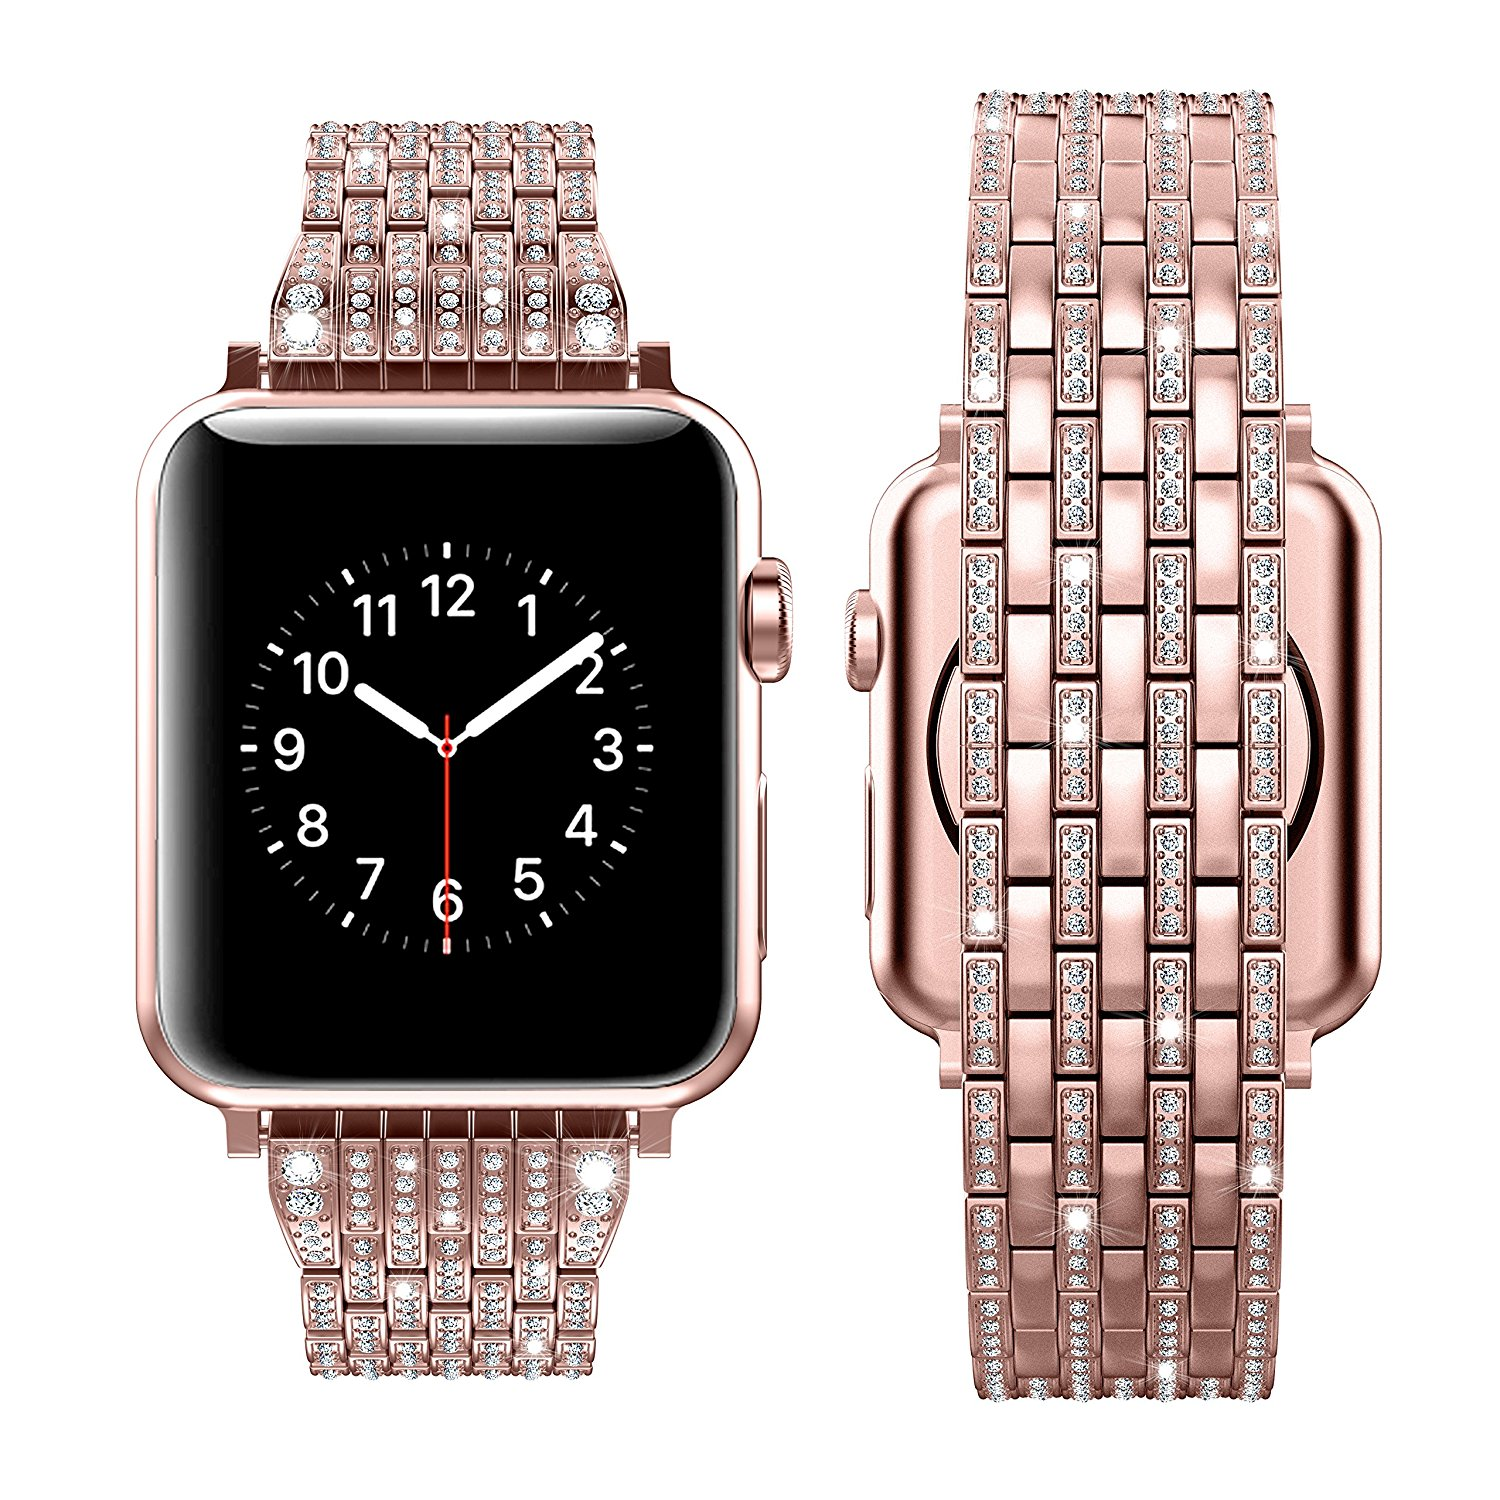 Luxury Rhinestone Diamond Strap for apple watch band 42mm 38mm Stainless Steel Watch Band metal strap For iWatch series 1 2 3 bracelet apple watch band 38mm women luxury diamond stainless steel strap wrist belt for iwatch apple watch strap series 3 2 1